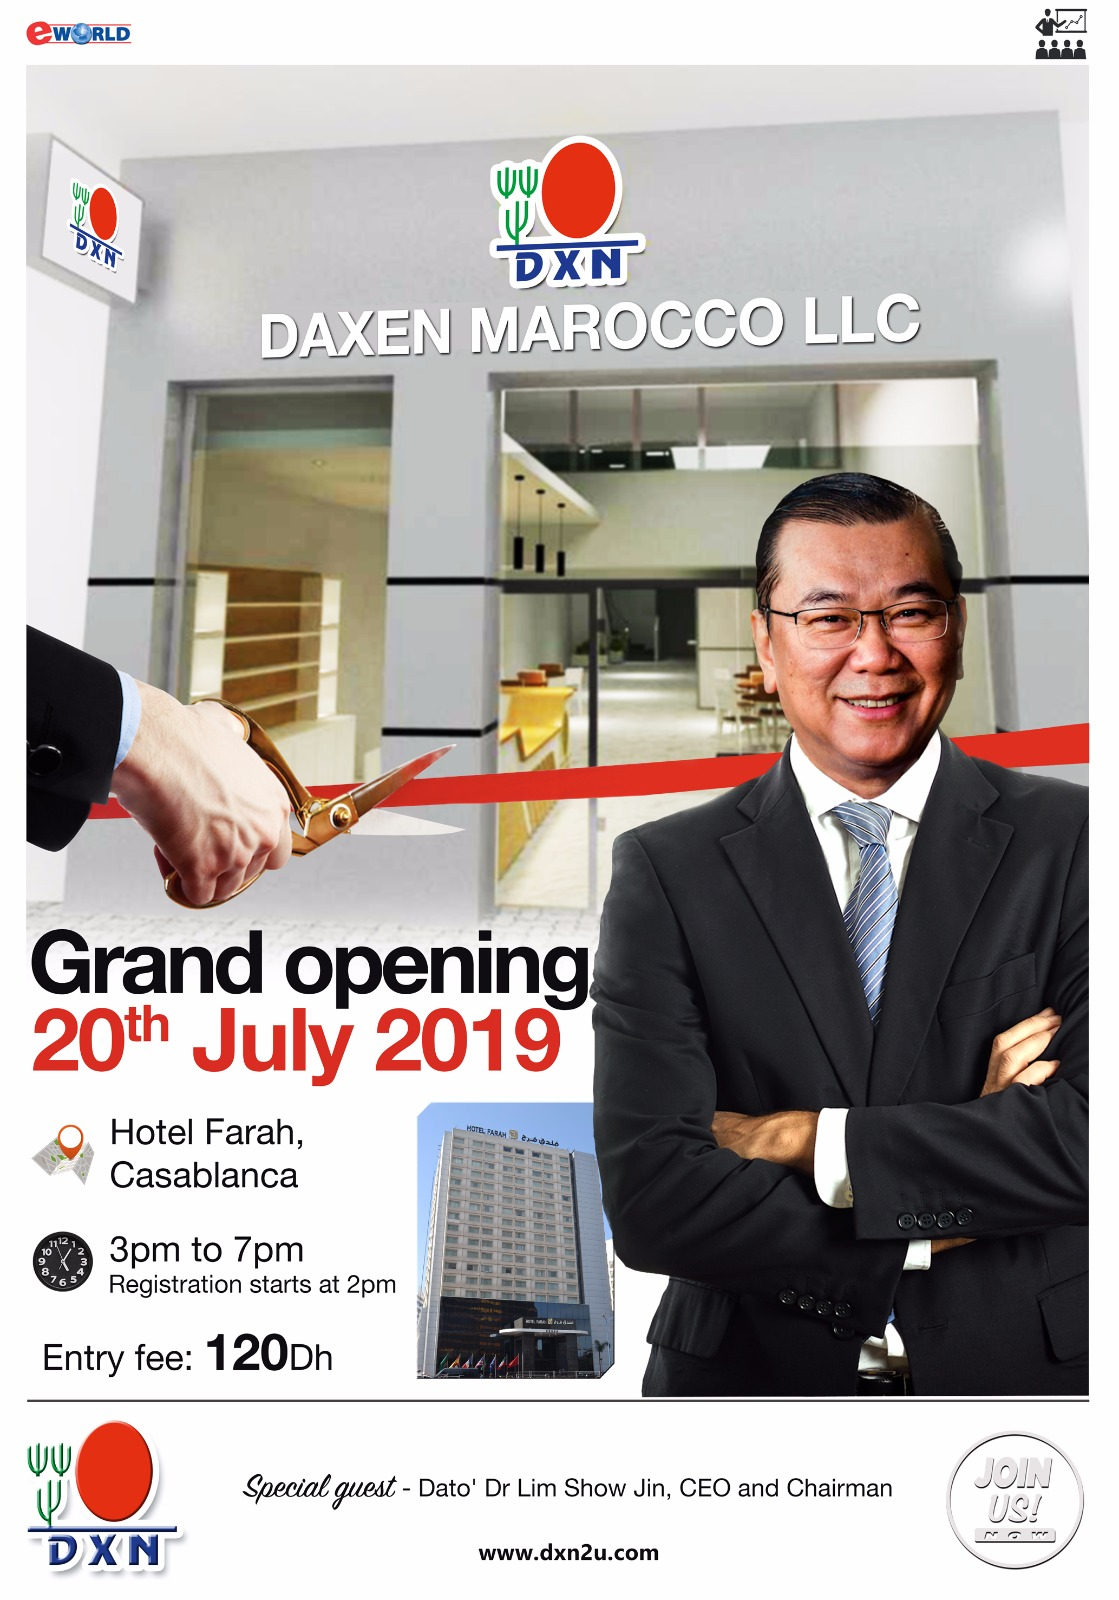 <h4>Grand opening 20th july 2019</h4><p><p>Grand opening 20th july 2019</p> </p>